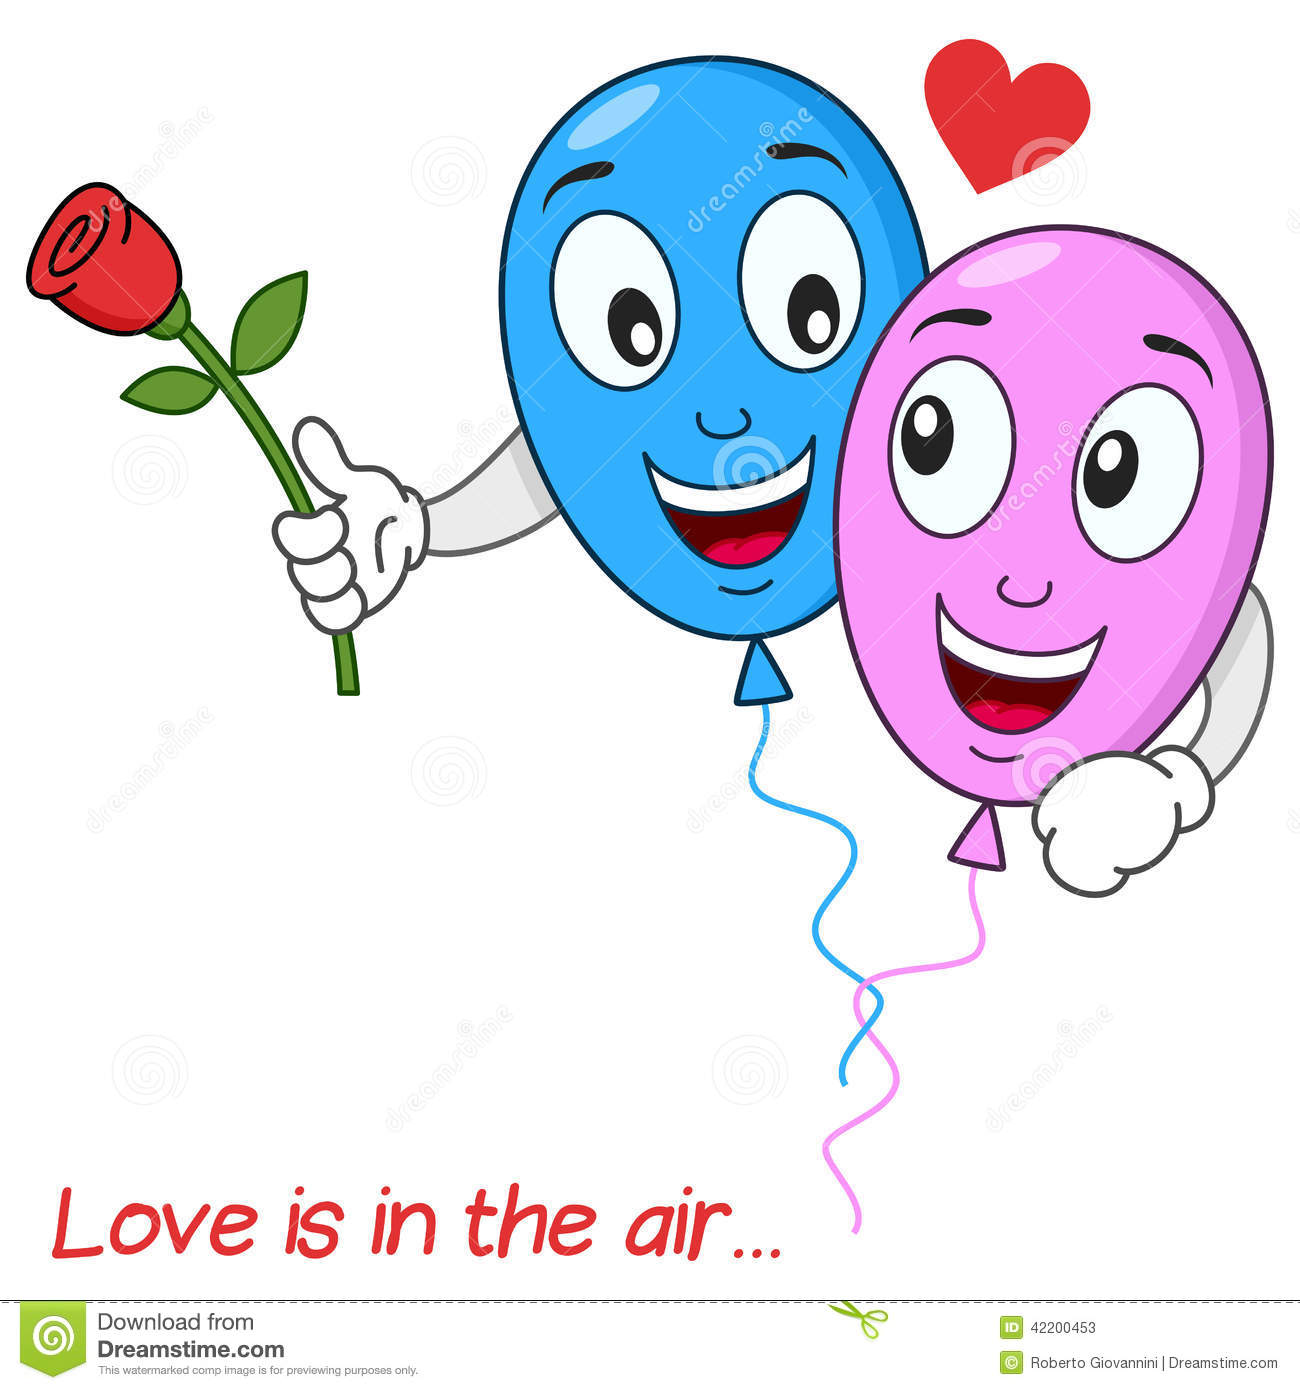 Cartoon Characters Love : Balloons lovers in love flying the air stock vector